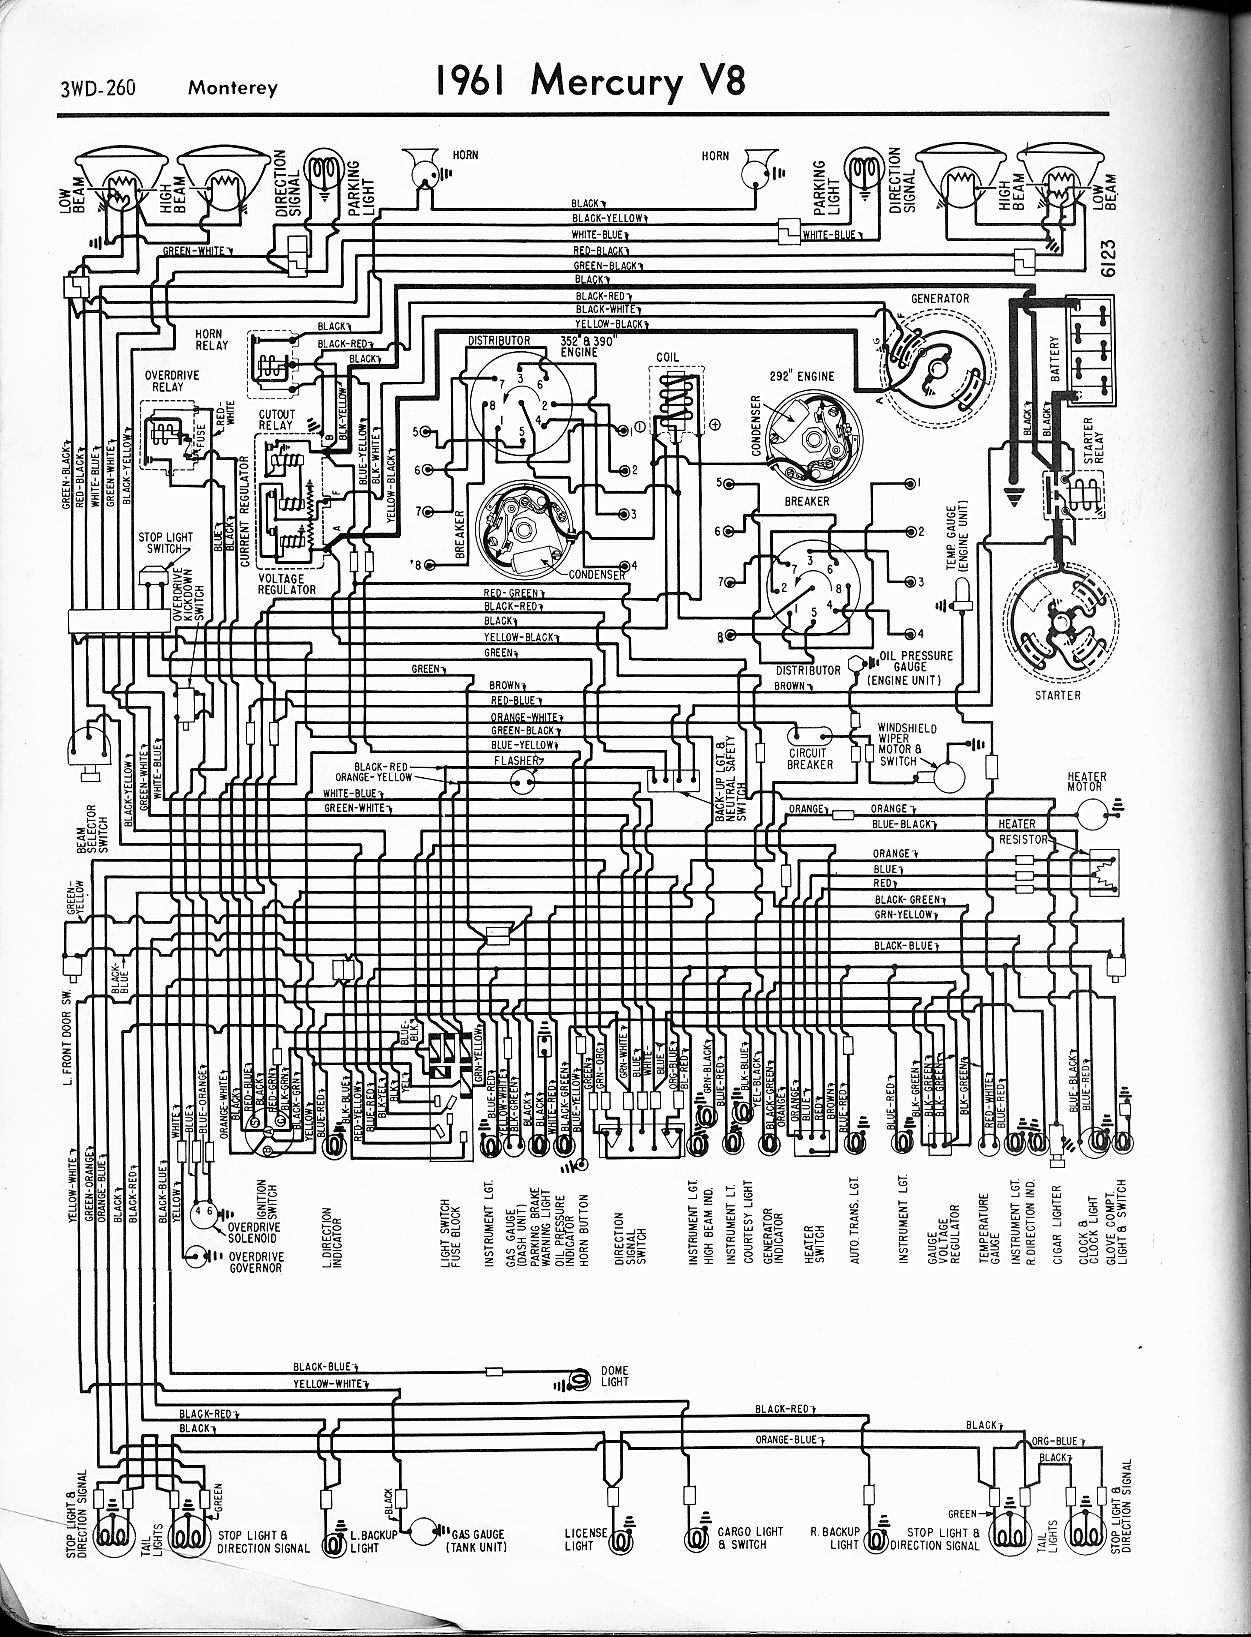 MWire5765 260 mercury wiring diagrams the old car manual project mercury wiring diagram at webbmarketing.co